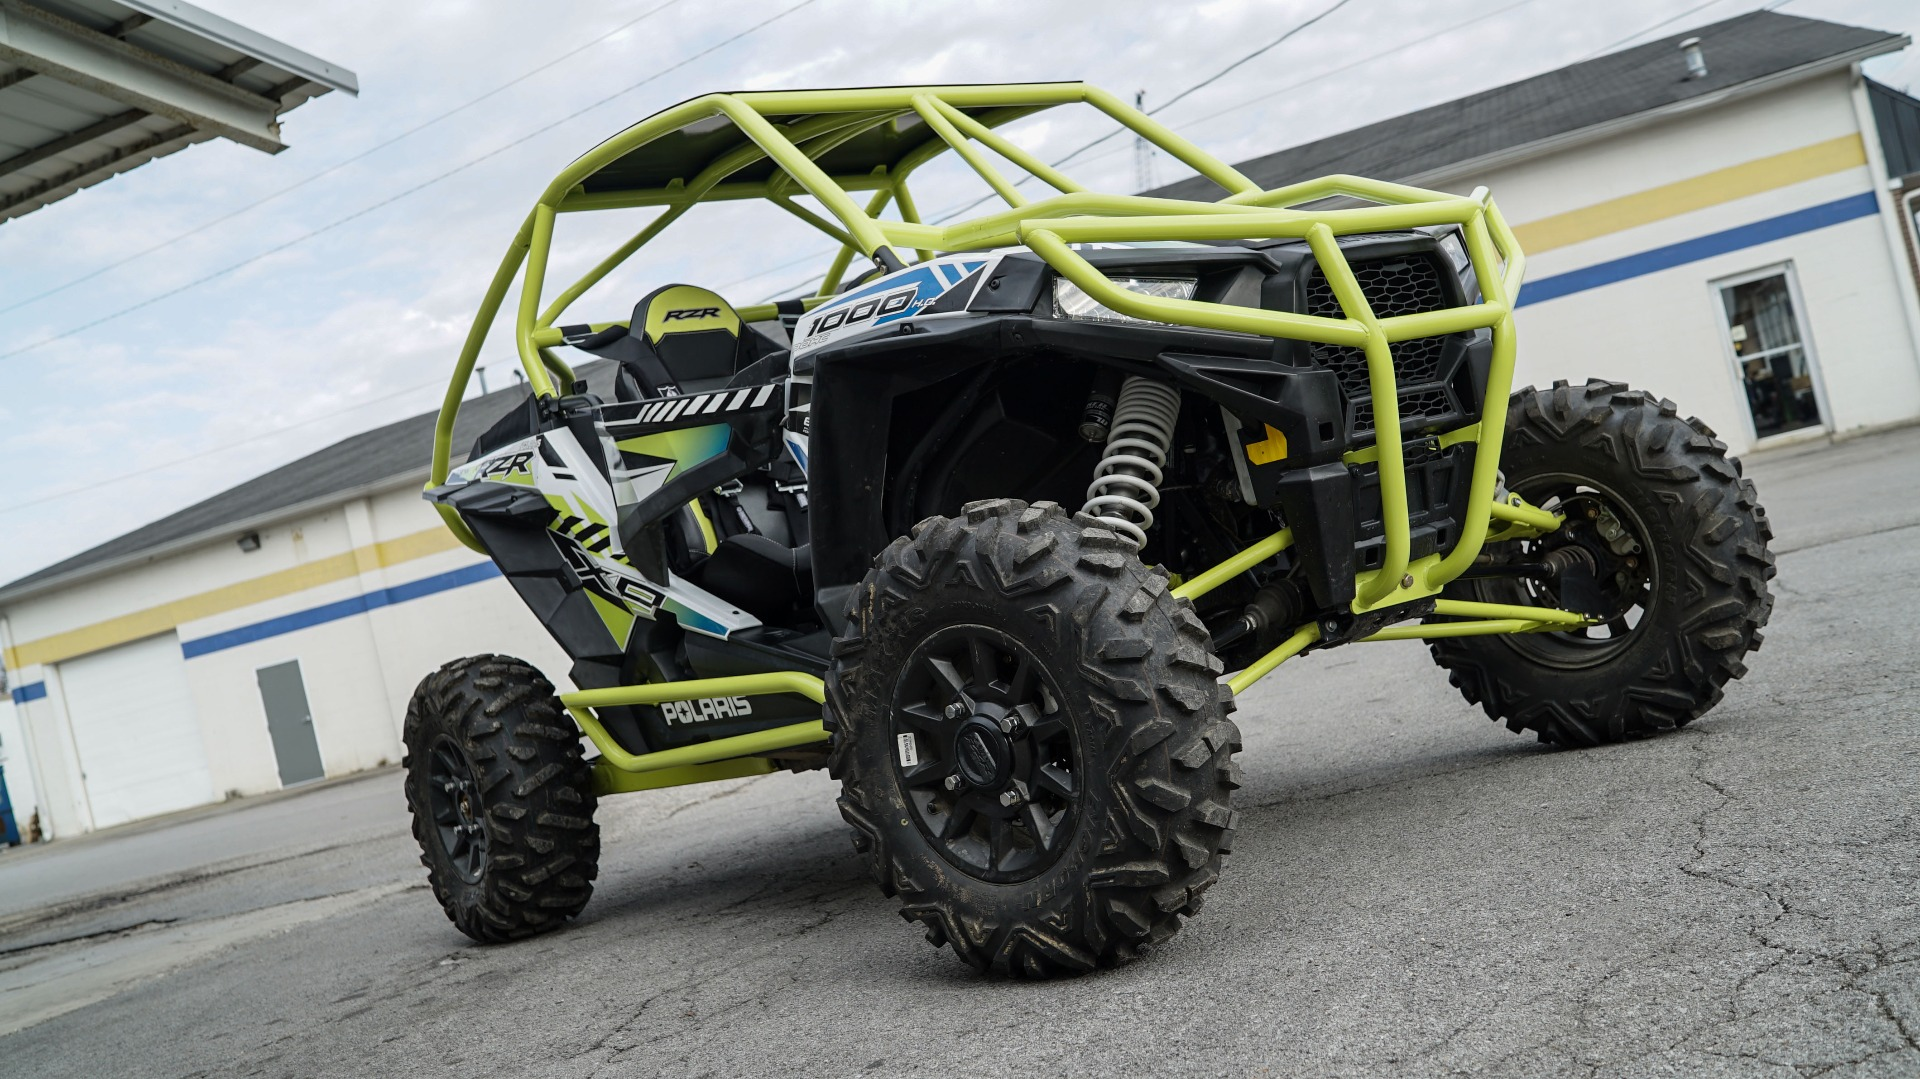 Polaris RZR 1000 with Yellow Roll Cage Image 12